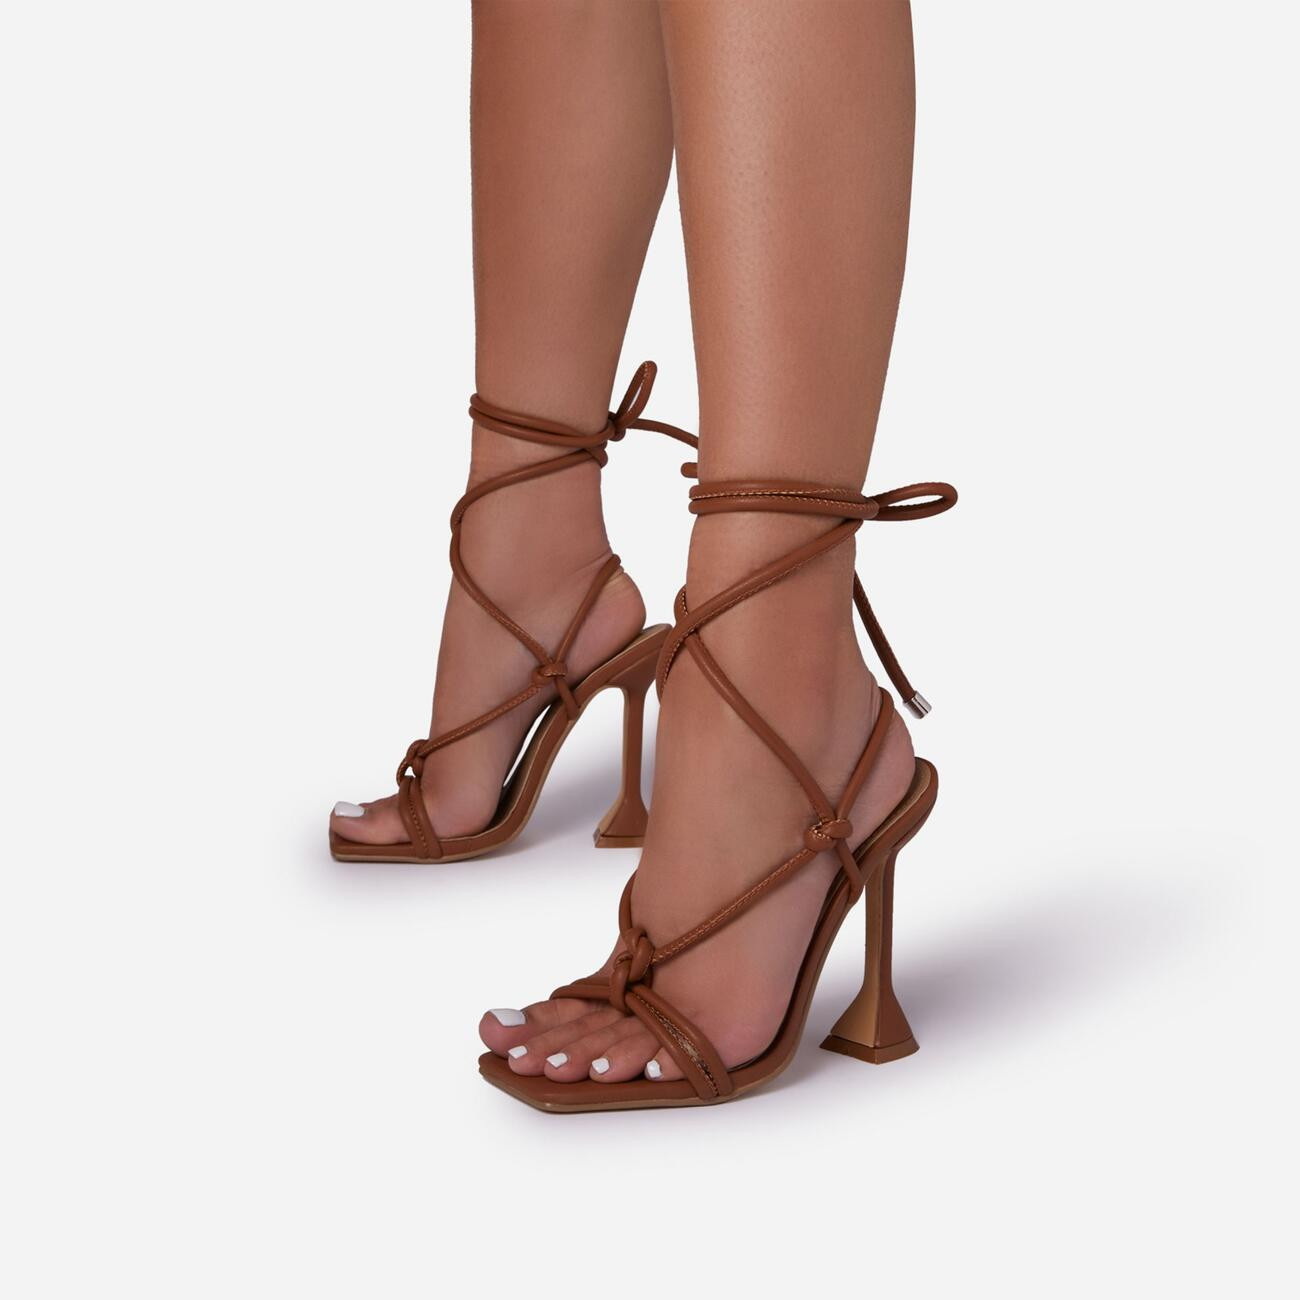 Fiat Lace Up Square Toe Sculptured Heel In Tan Brown Faux Leather